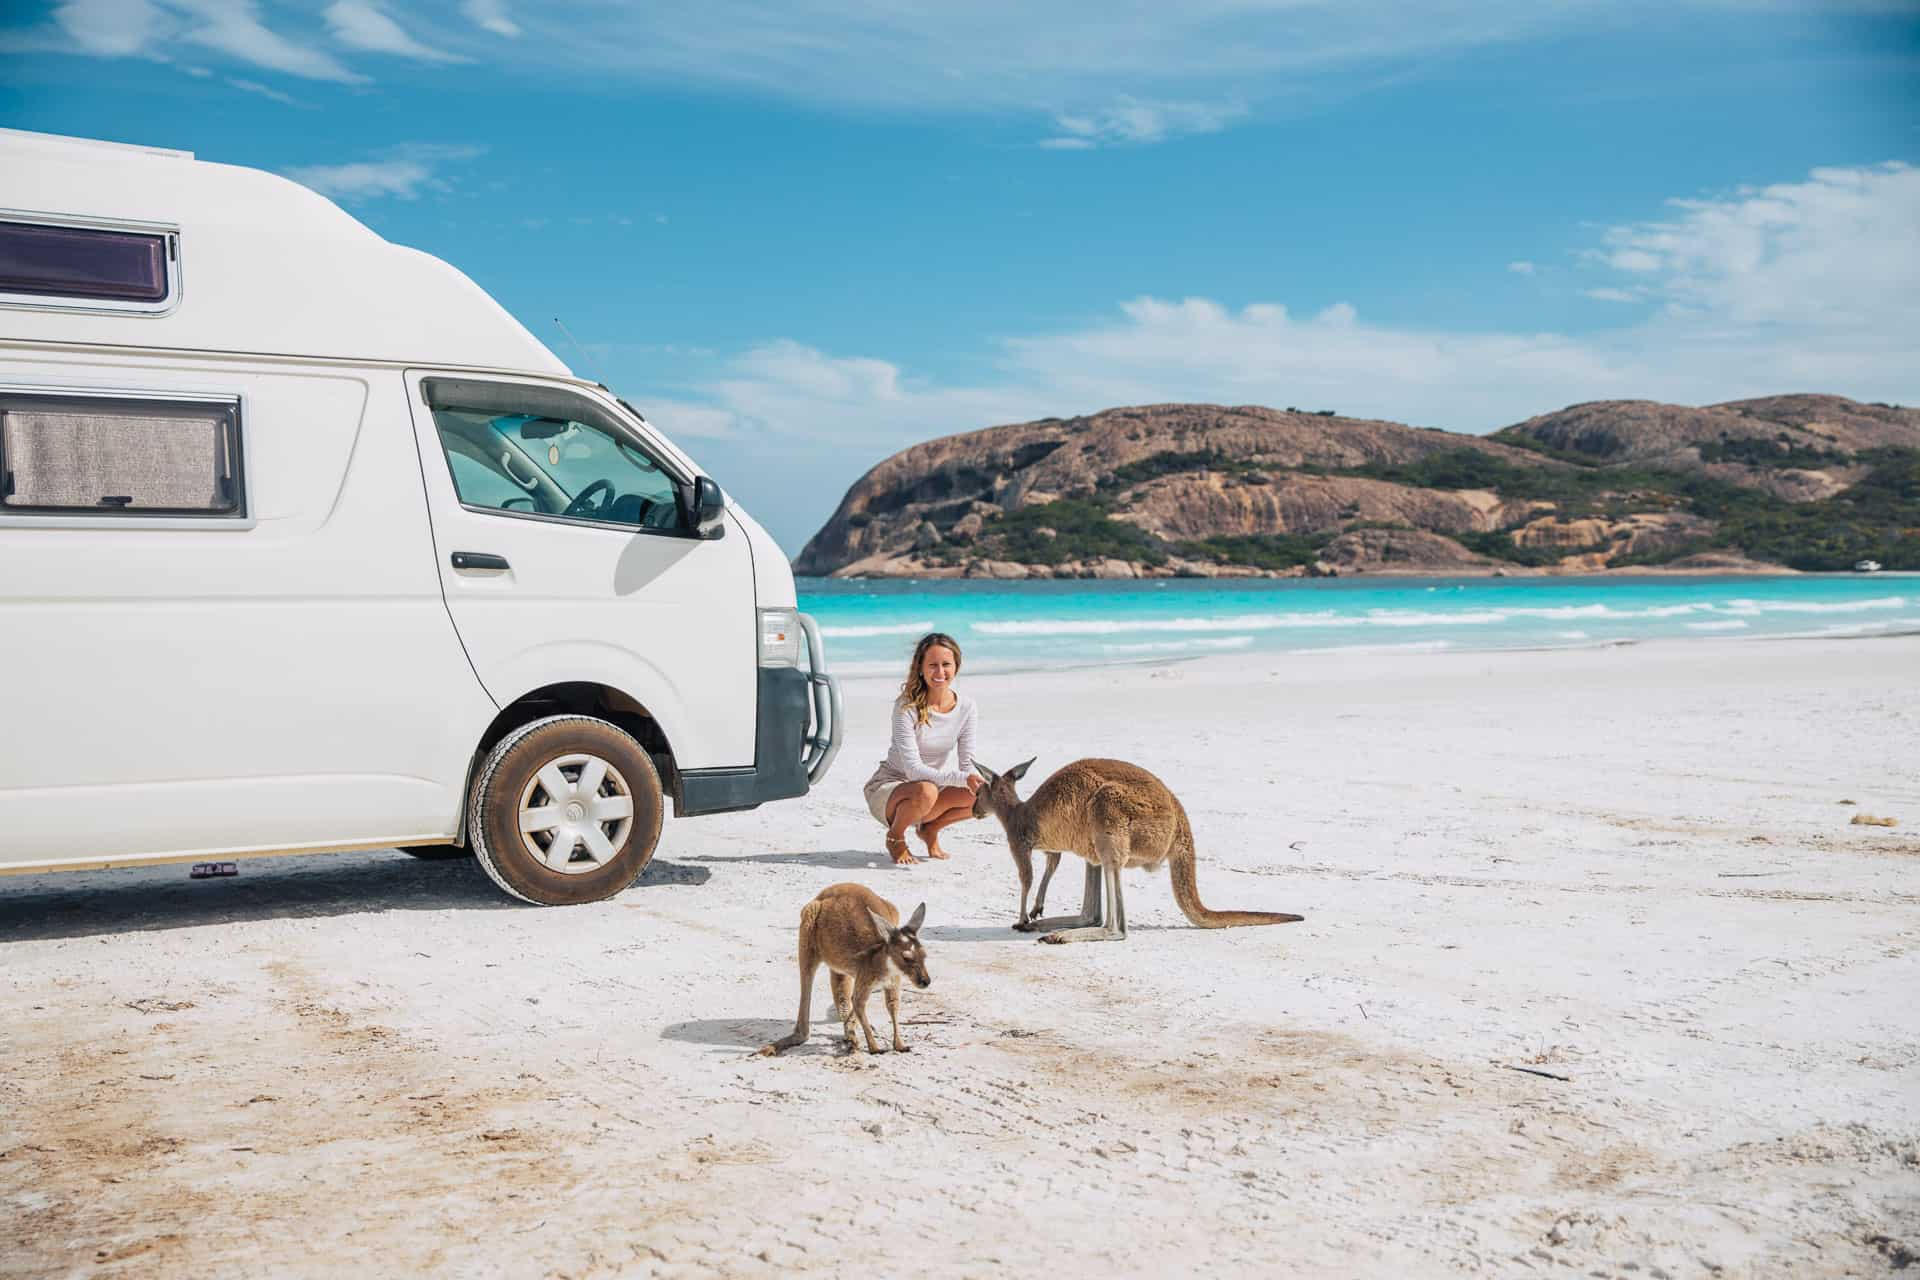 things to do in esperance, what to do in esperance, esperance things to do, esperance attractions, beaches in esperance, lucky bay, lucky bay esperance, lucky bay kangaroos